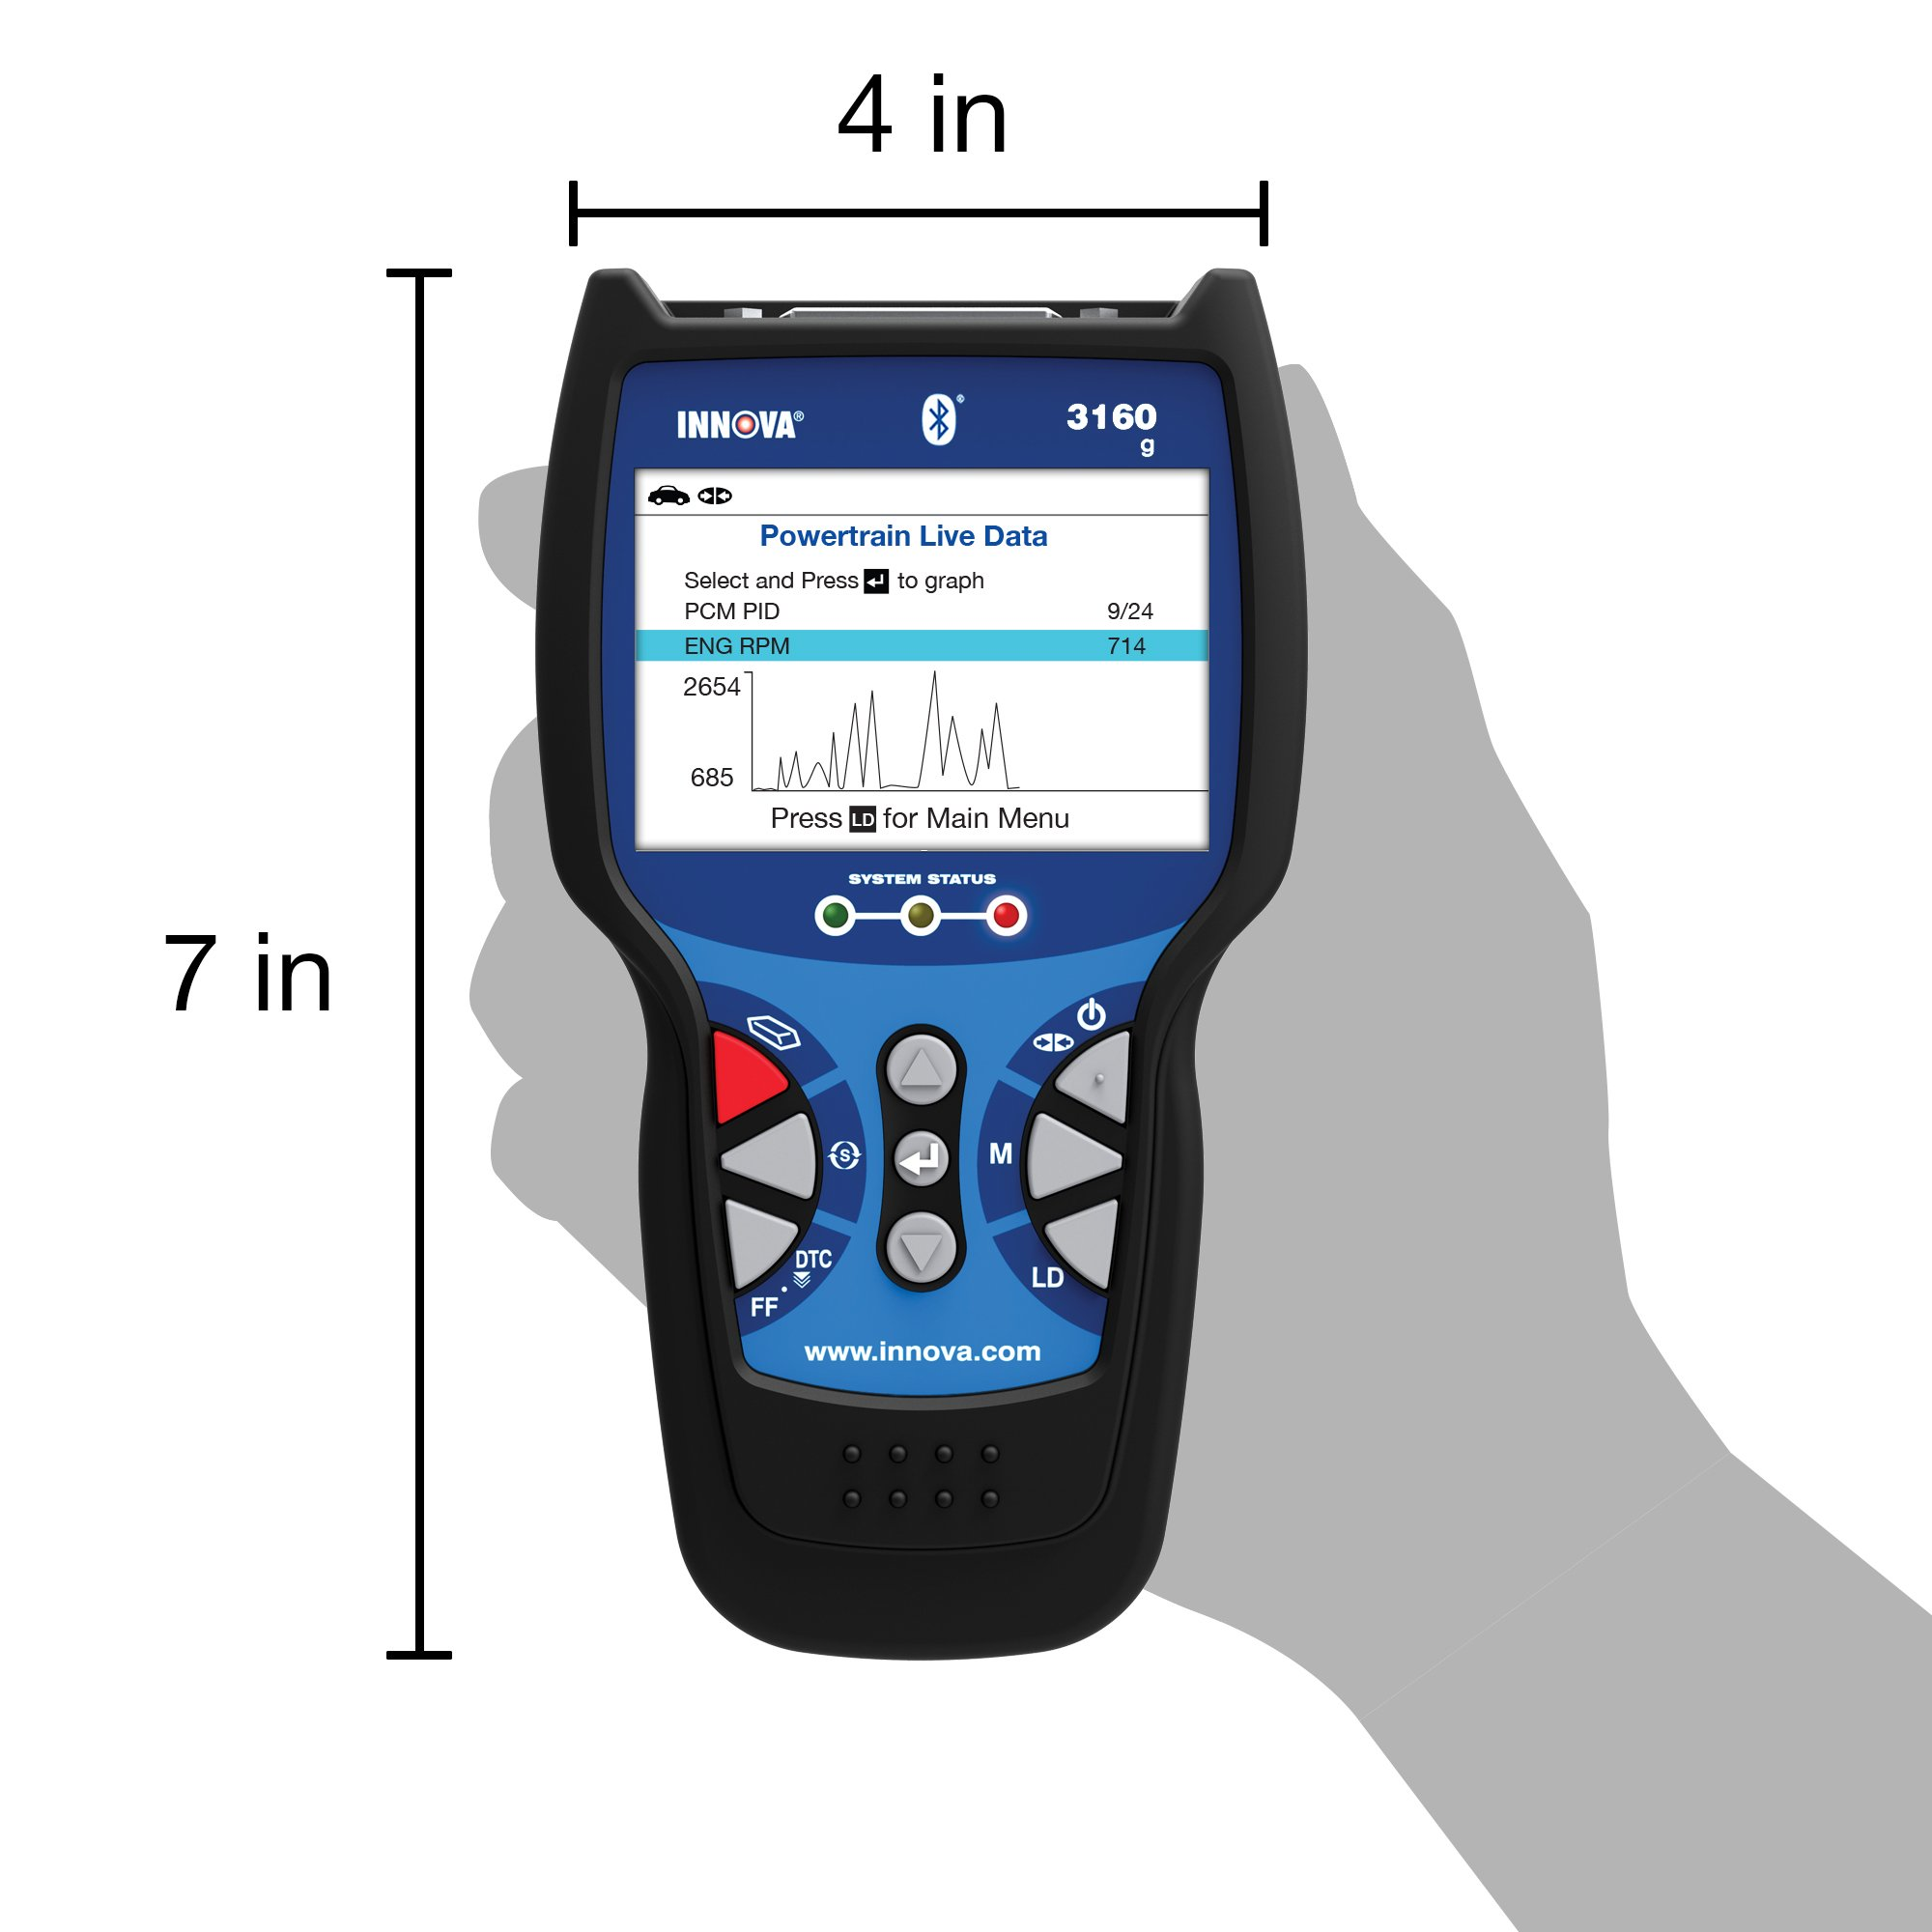 Innova Color Screen with Bluetooth 3160g Code Reader/Scan Tool with ABS, SRS, and Live Data for OBD2 Vehicles by Innova (Image #4)